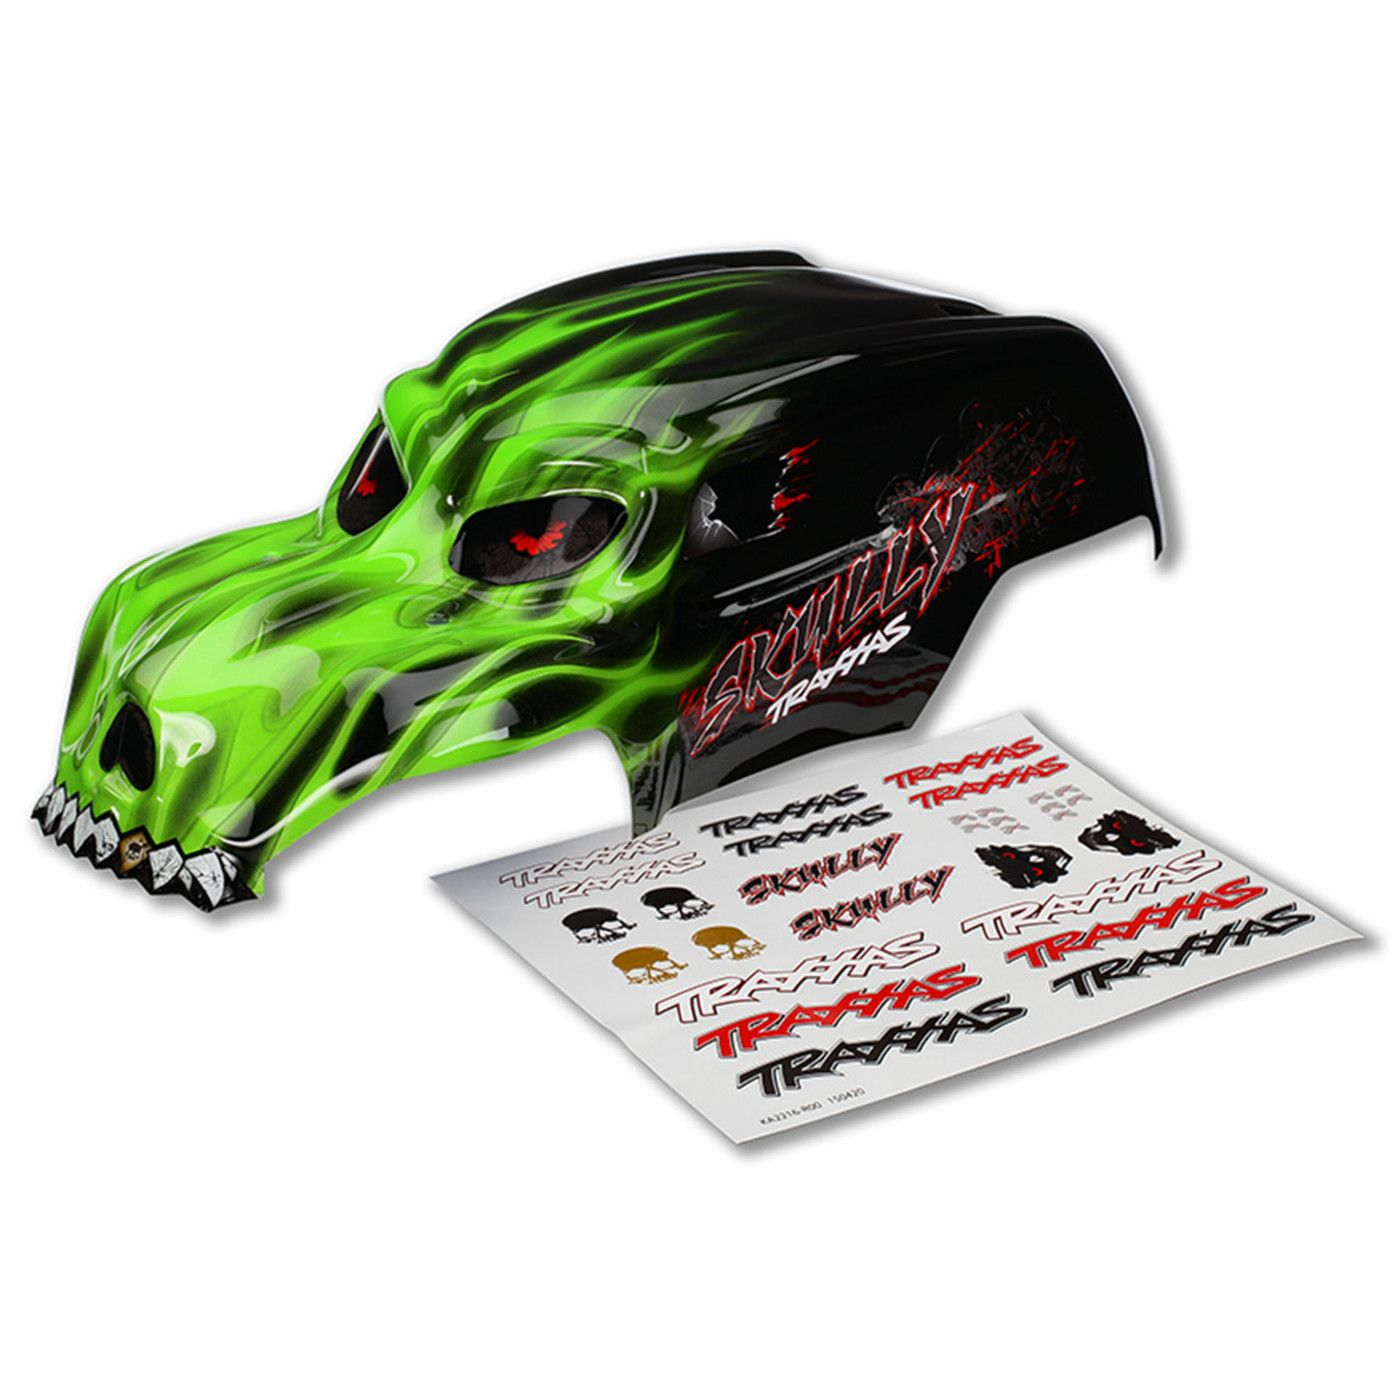 Green Skully Body with Decals